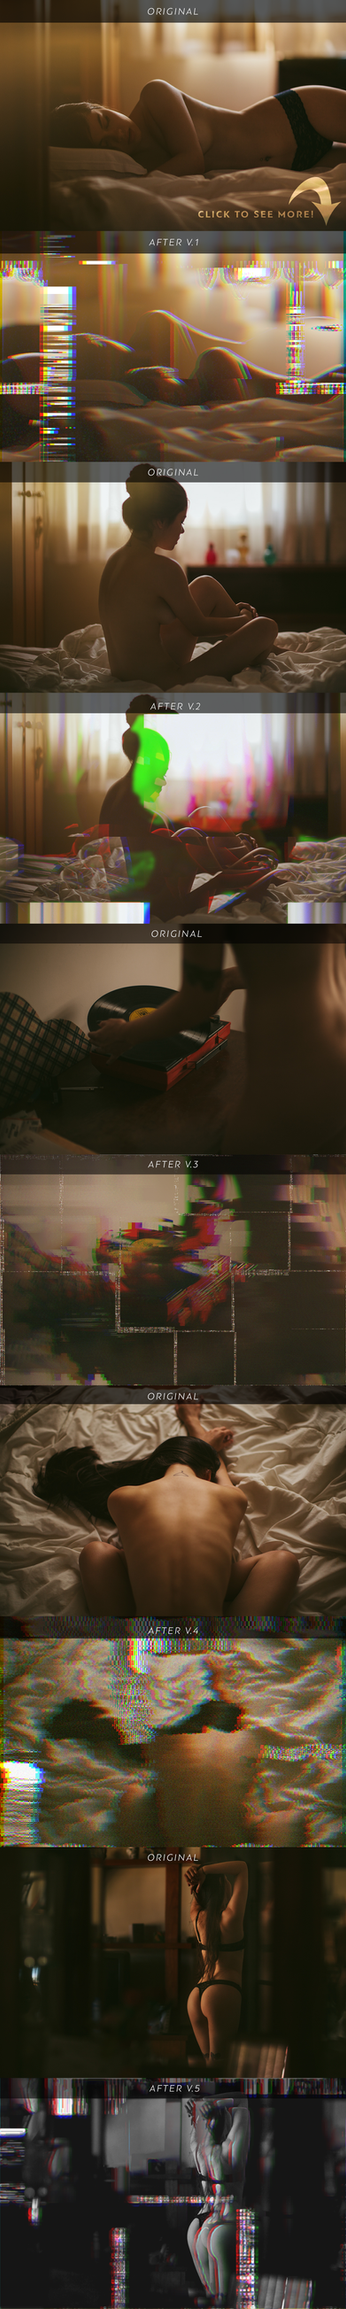 Corrupted VHS 3D Photoshop Action by ShekFilters